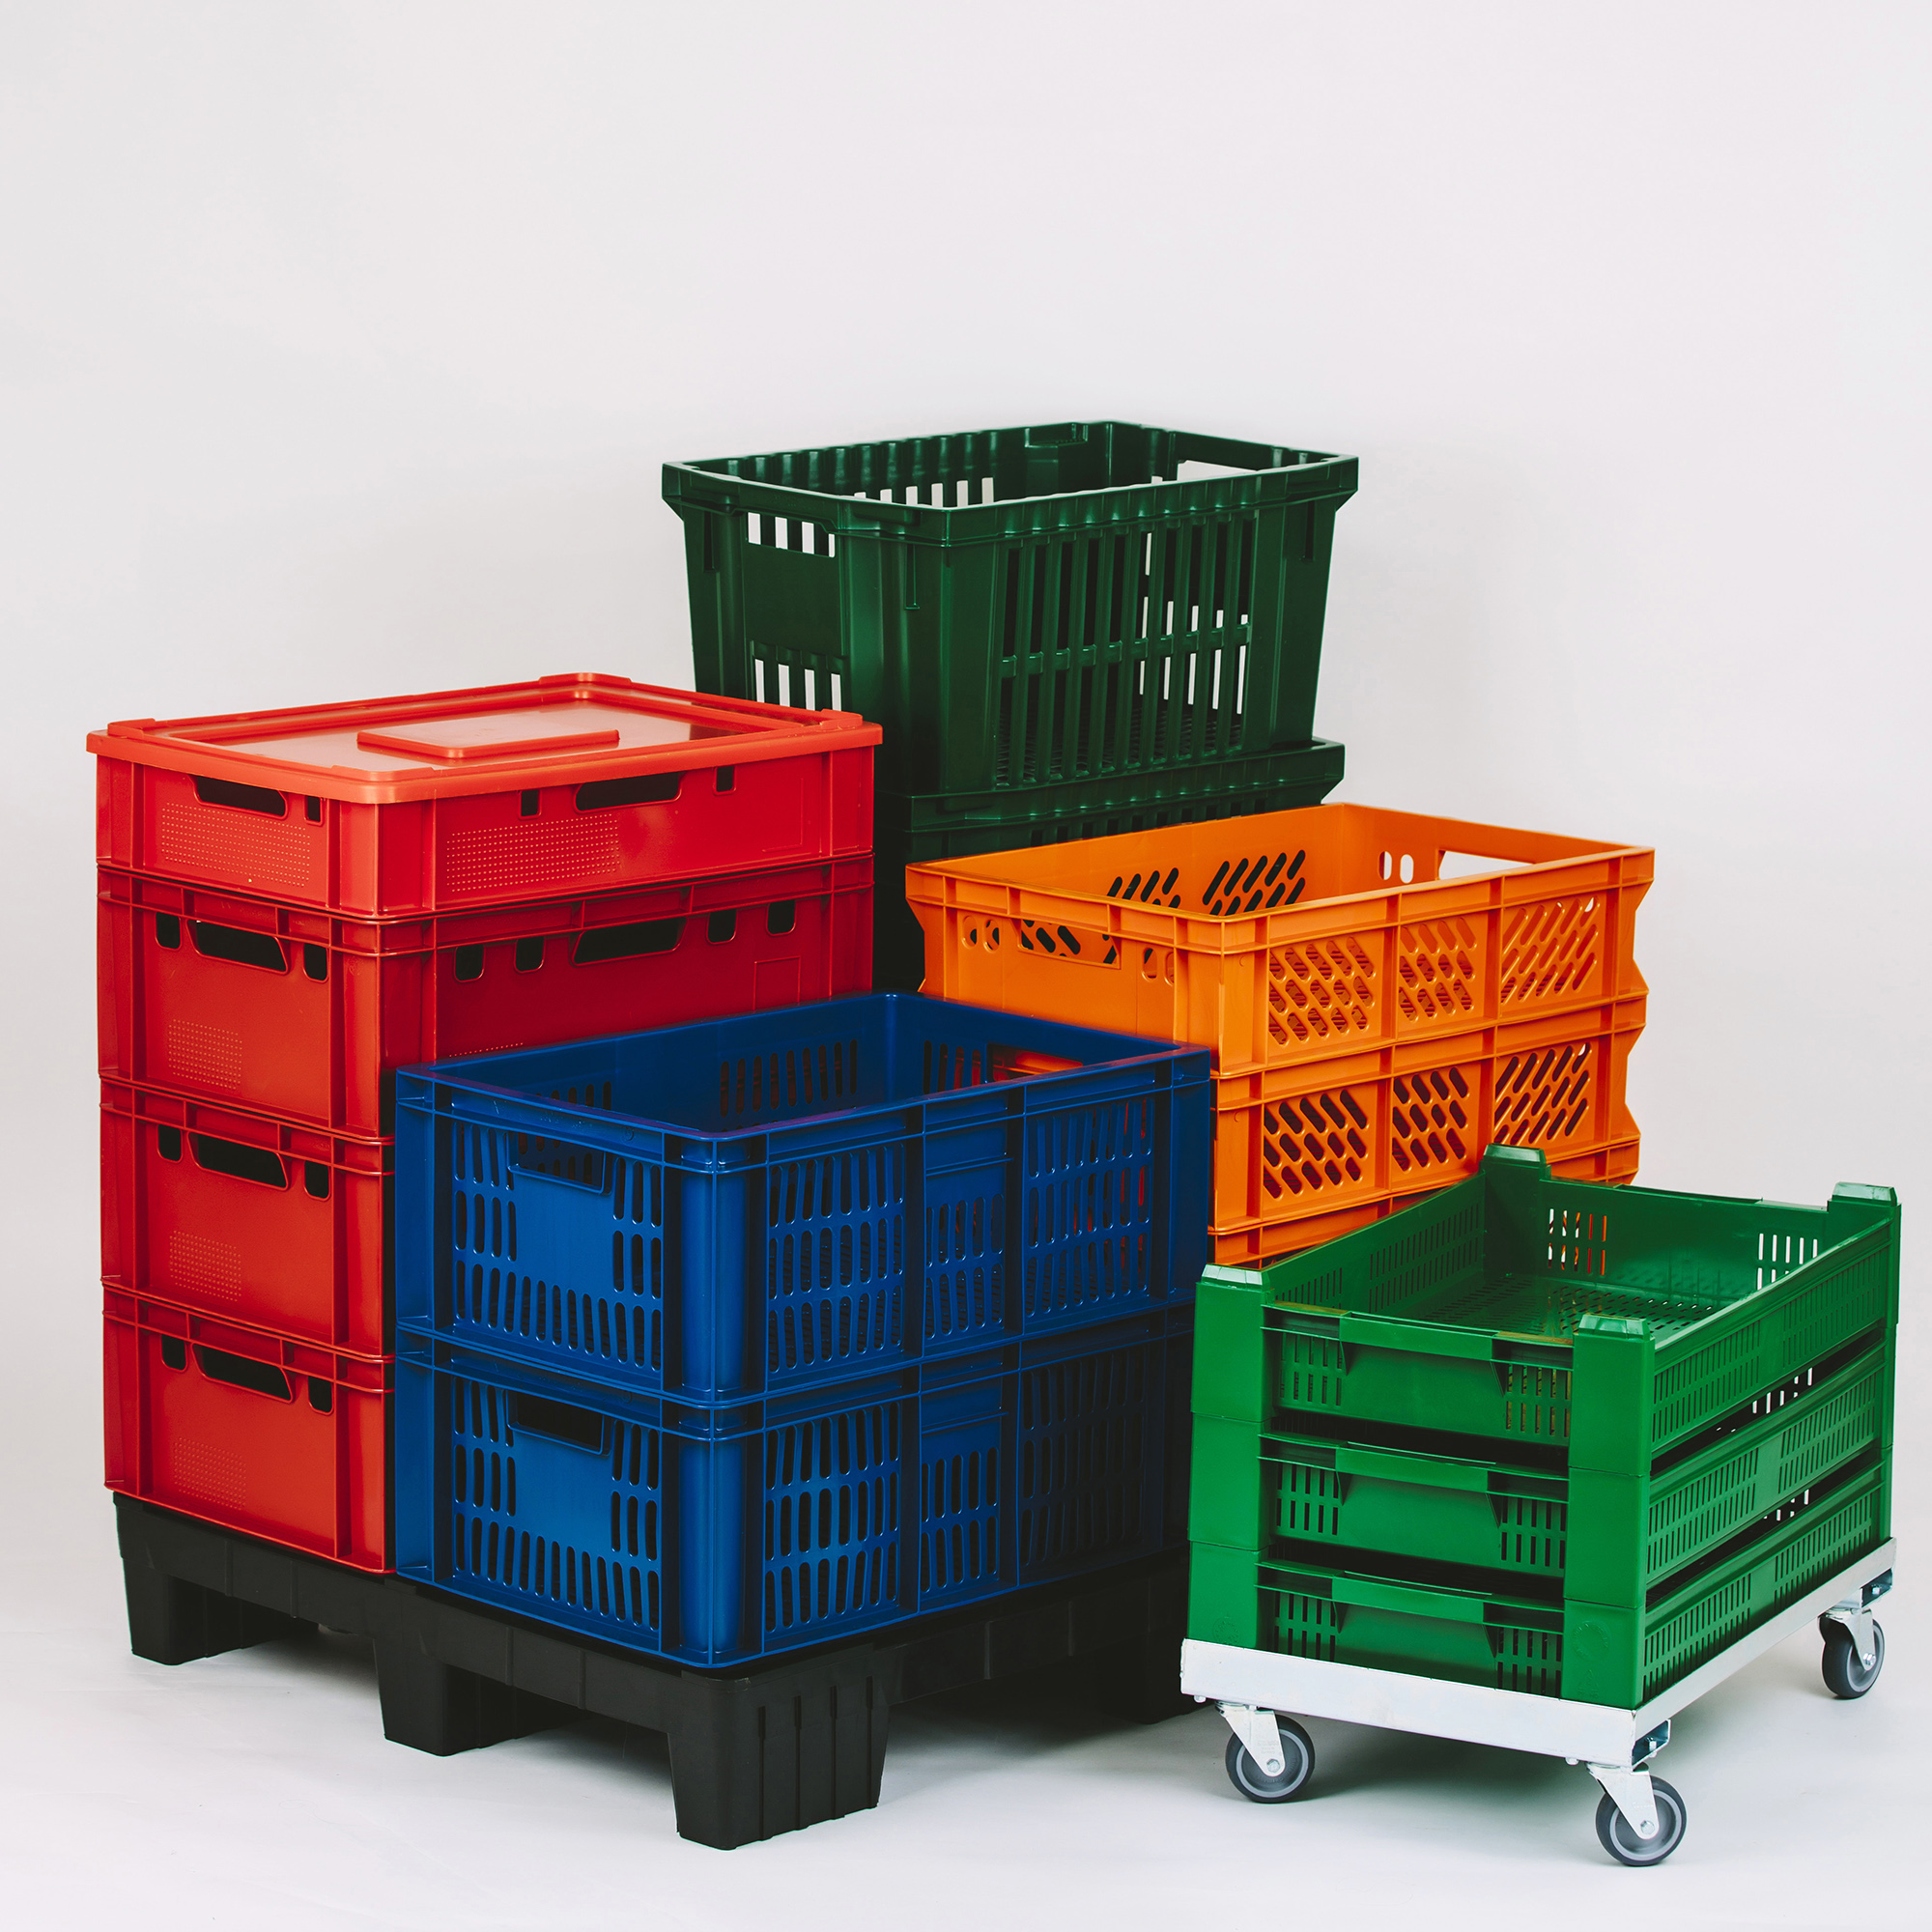 The Main Company Products Are Plastic Boxes Pallets And Containers Pallets Are Usual European Standard Sized Plastic Boxes Have Different Sizes And